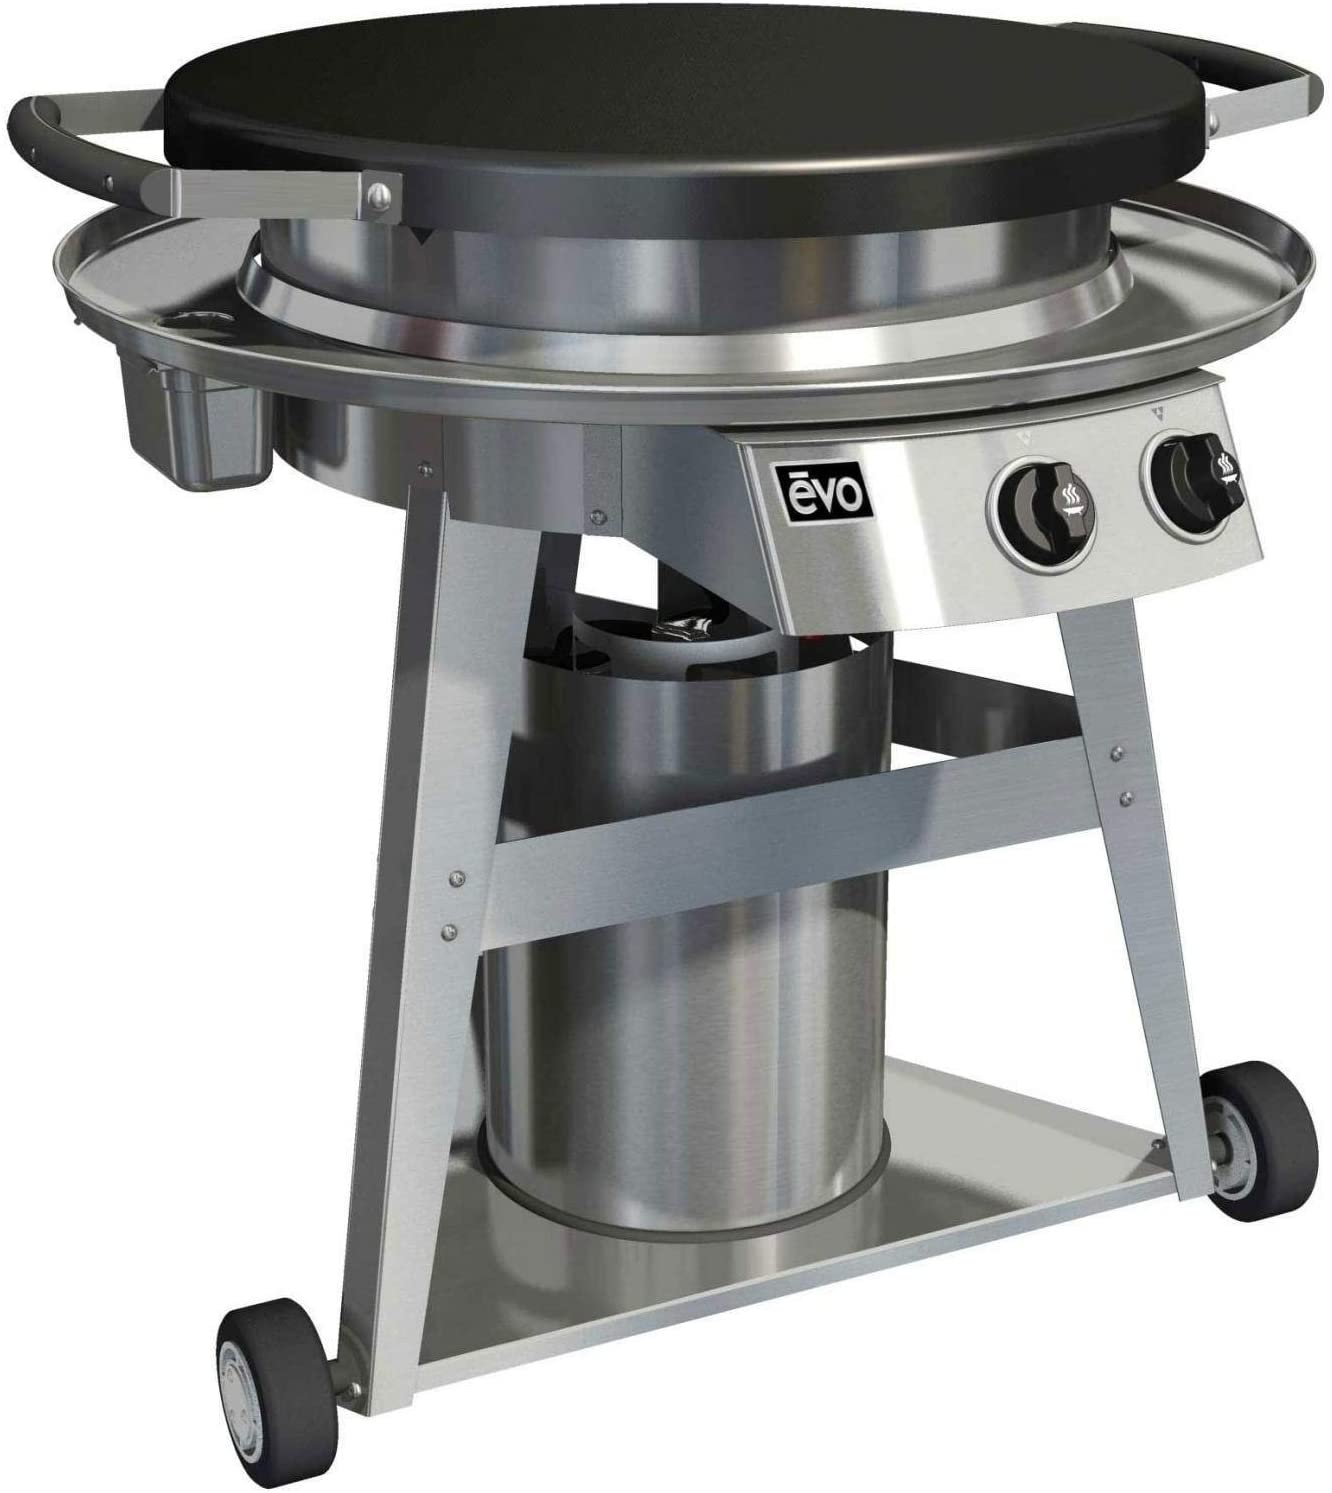 Amazon Com Evo Professional Series Gas Grill On Cart 10 0002 Lp Seasoned Steel Cooktop Propane Garden Outdoor Evo is designed and built in america. evo professional series gas grill on cart 10 0002 lp seasoned steel cooktop propane